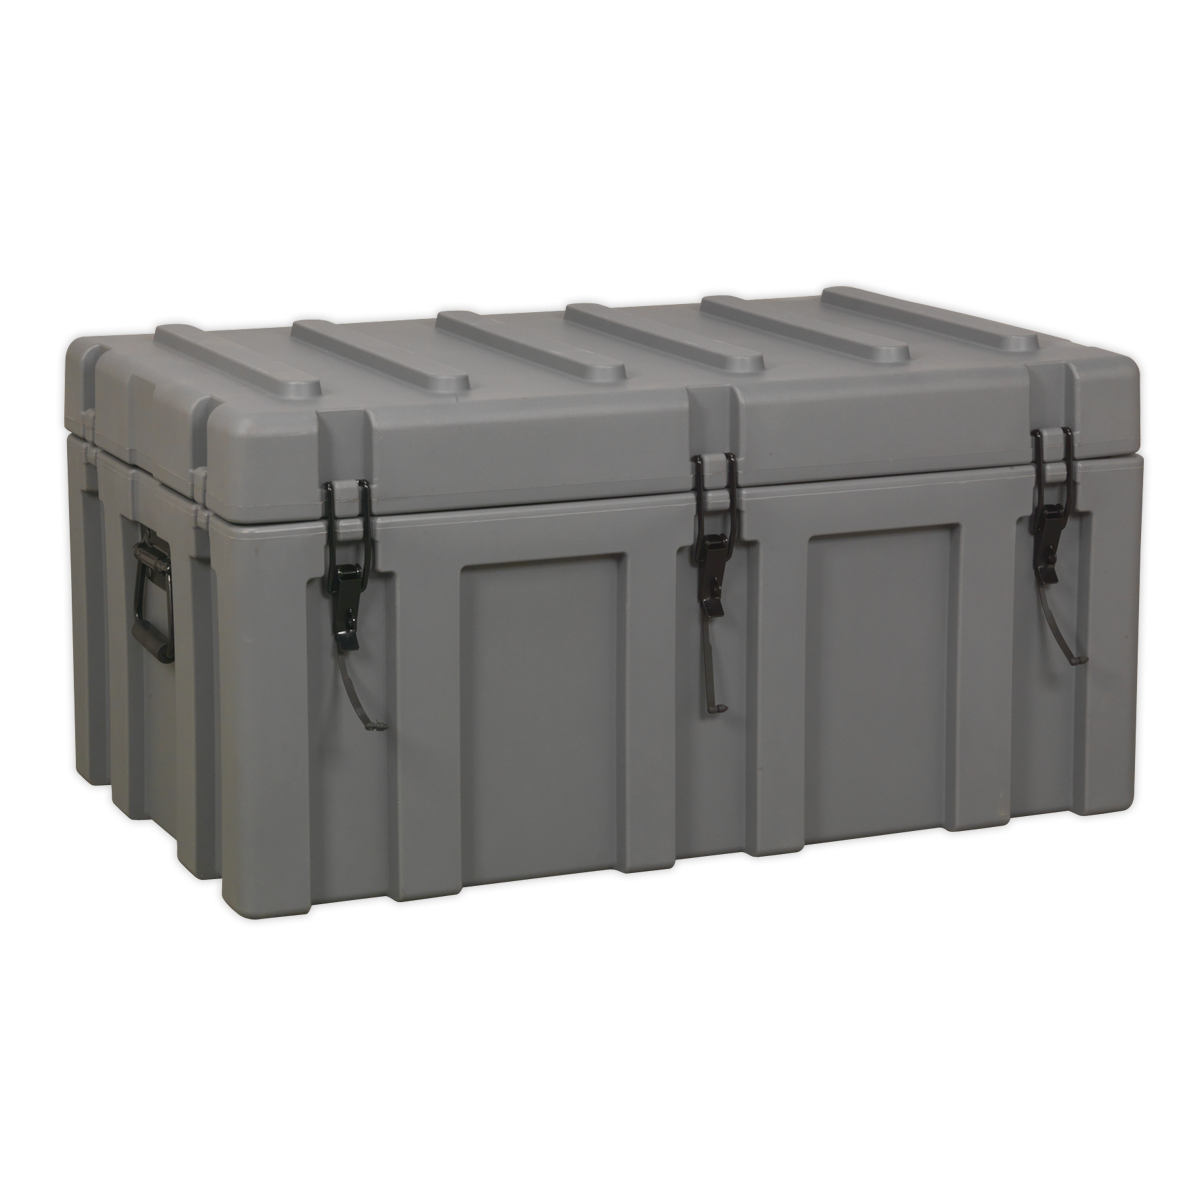 Rota-Mould Cargo Case 870mm   SEALEY RMC870 by Sealey   New